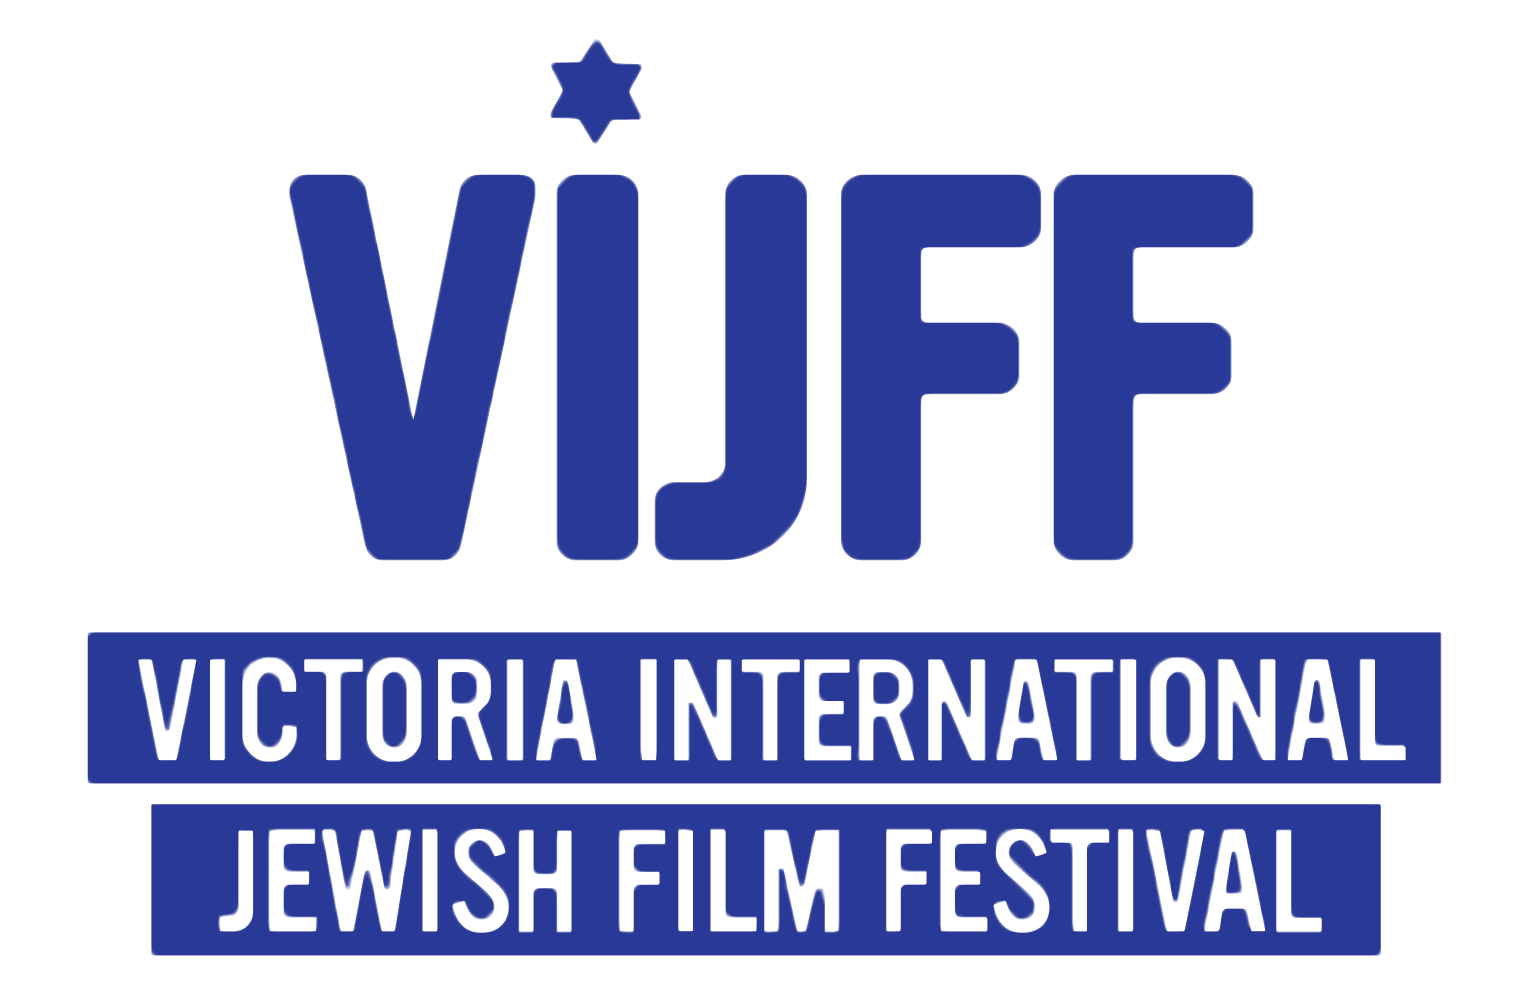 Victoria International Jewish Film Festival Logo - Legacy Drive In Cinema - Movies Victoria BC